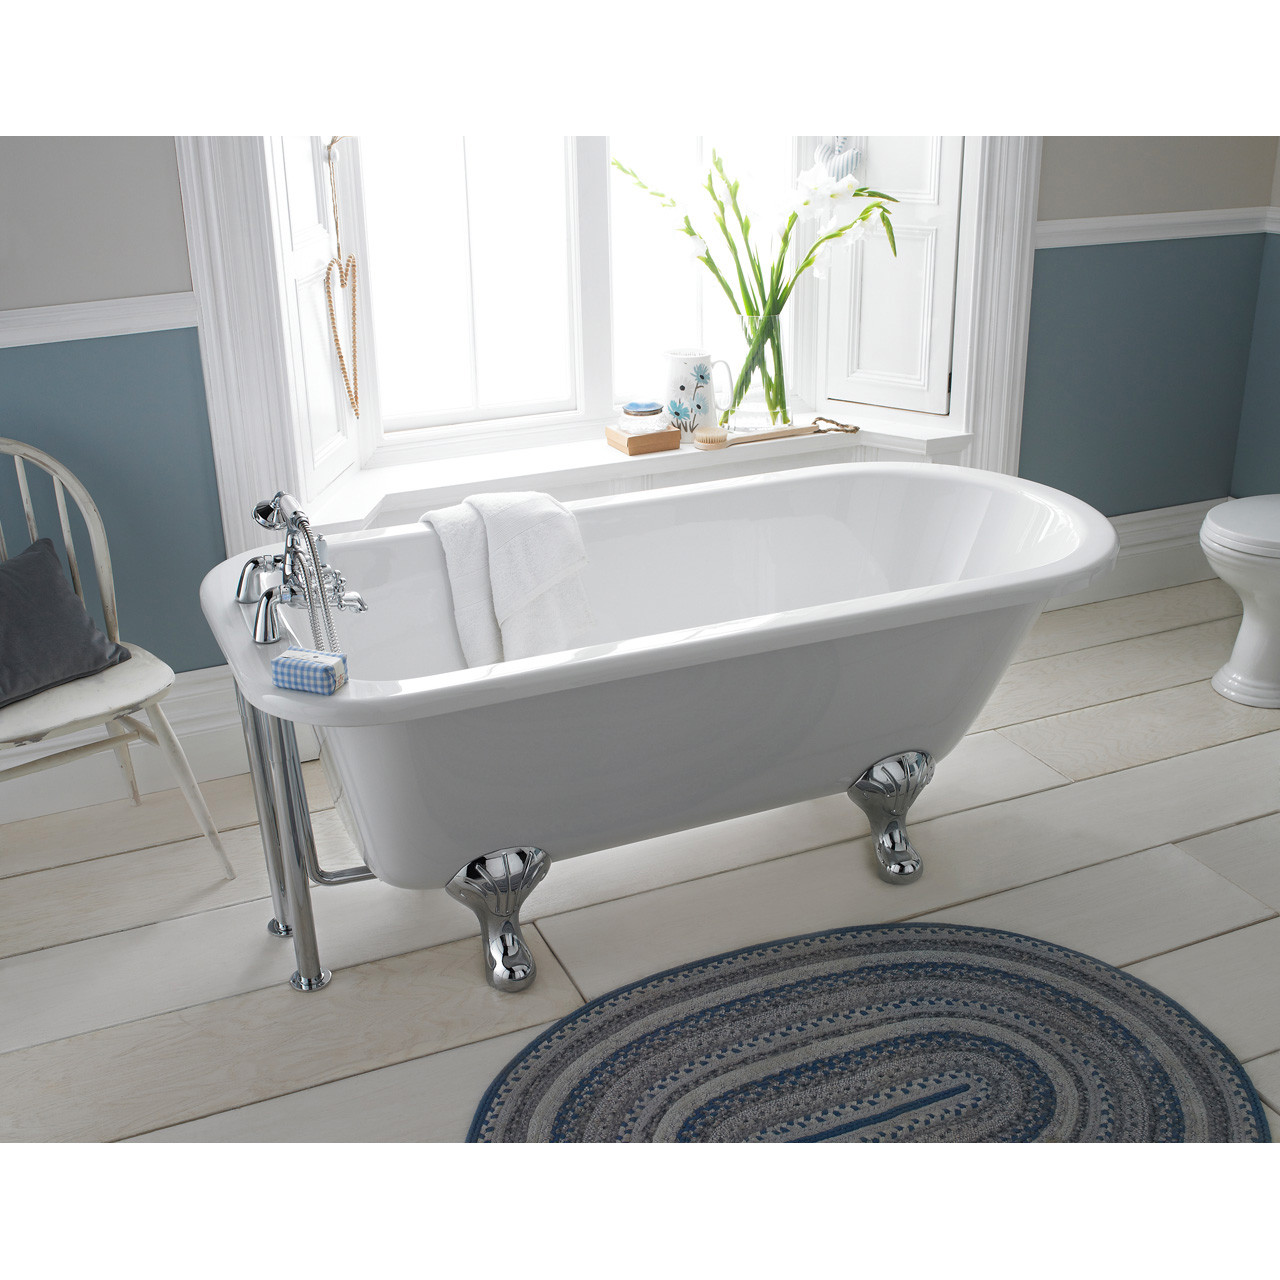 Premier White Berkshire 1700 Single Ended Freestanding Bath with Deacon Legs - RL1707M1